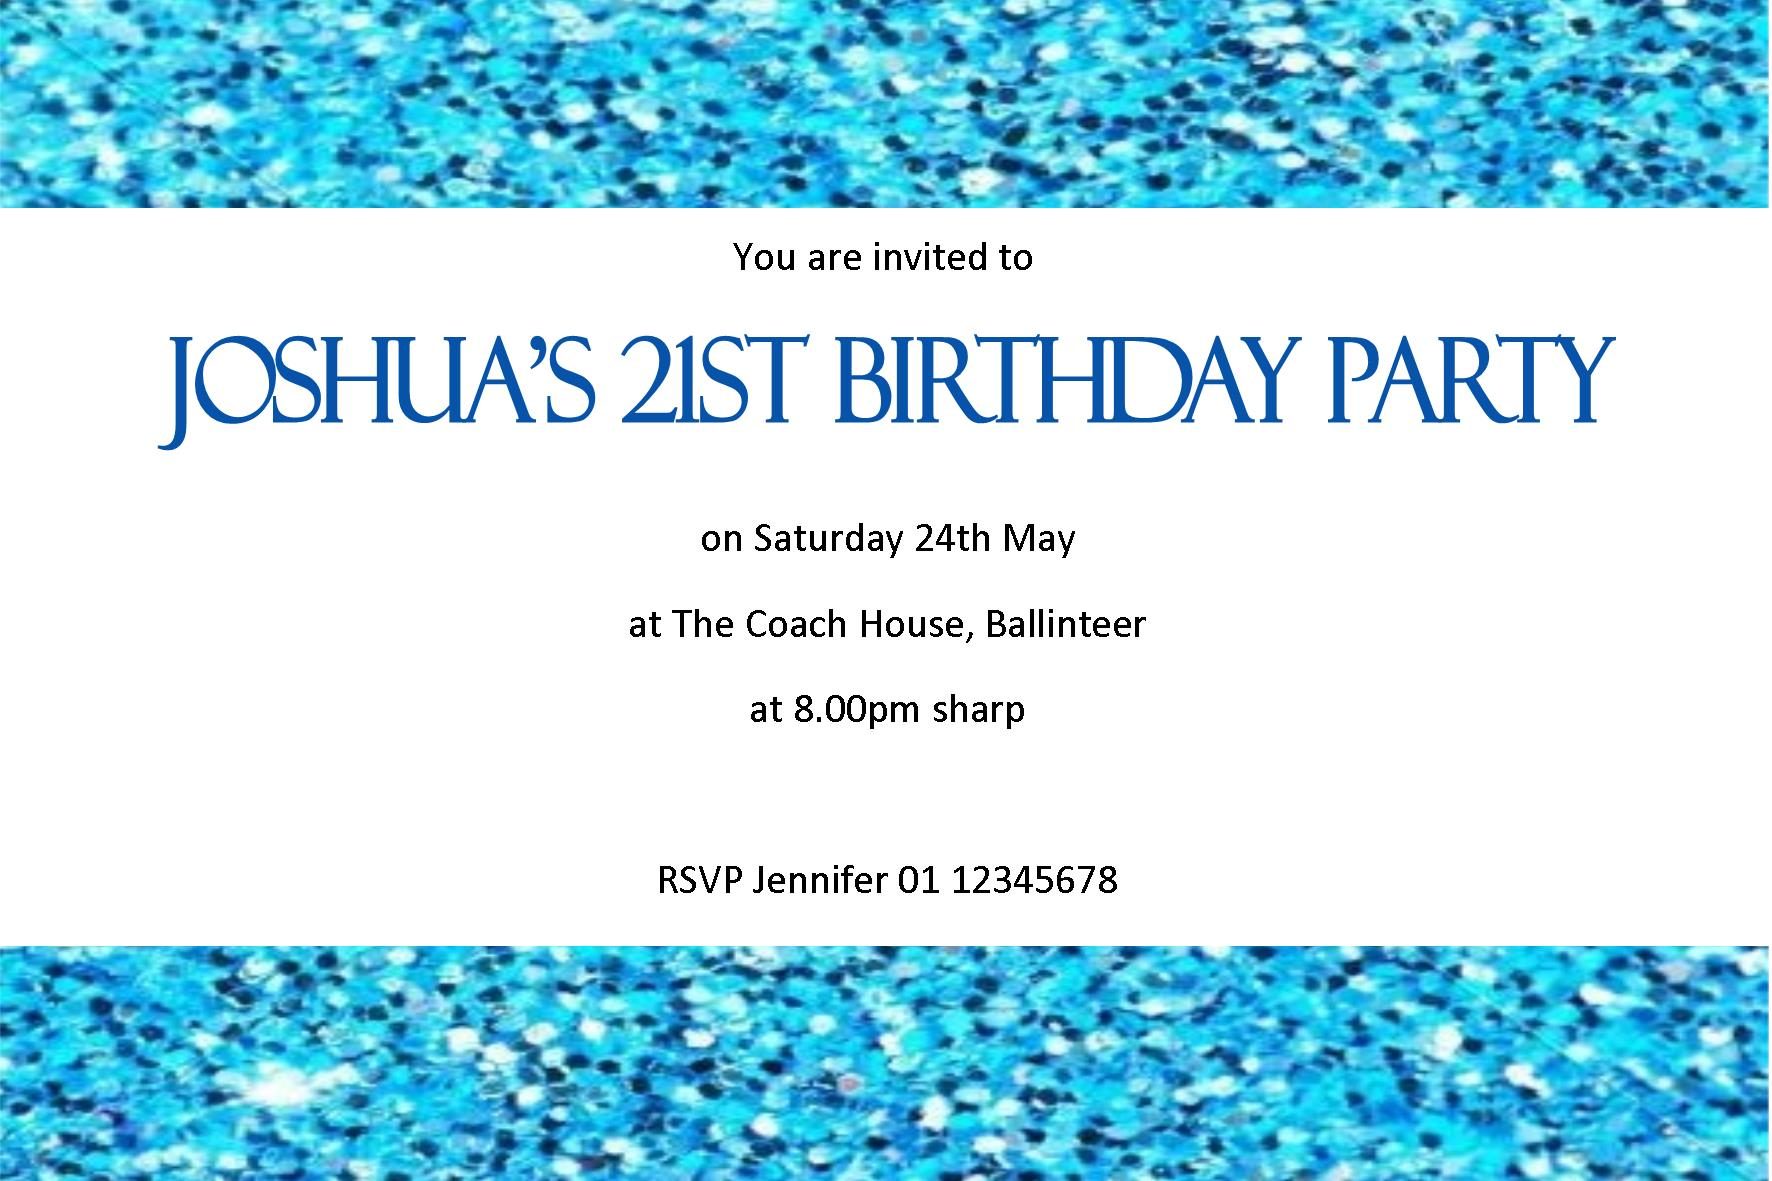 40th Birthday Ideas Birthday Invitation Text Samples – 30th Birthday Party Invitation Wording Samples